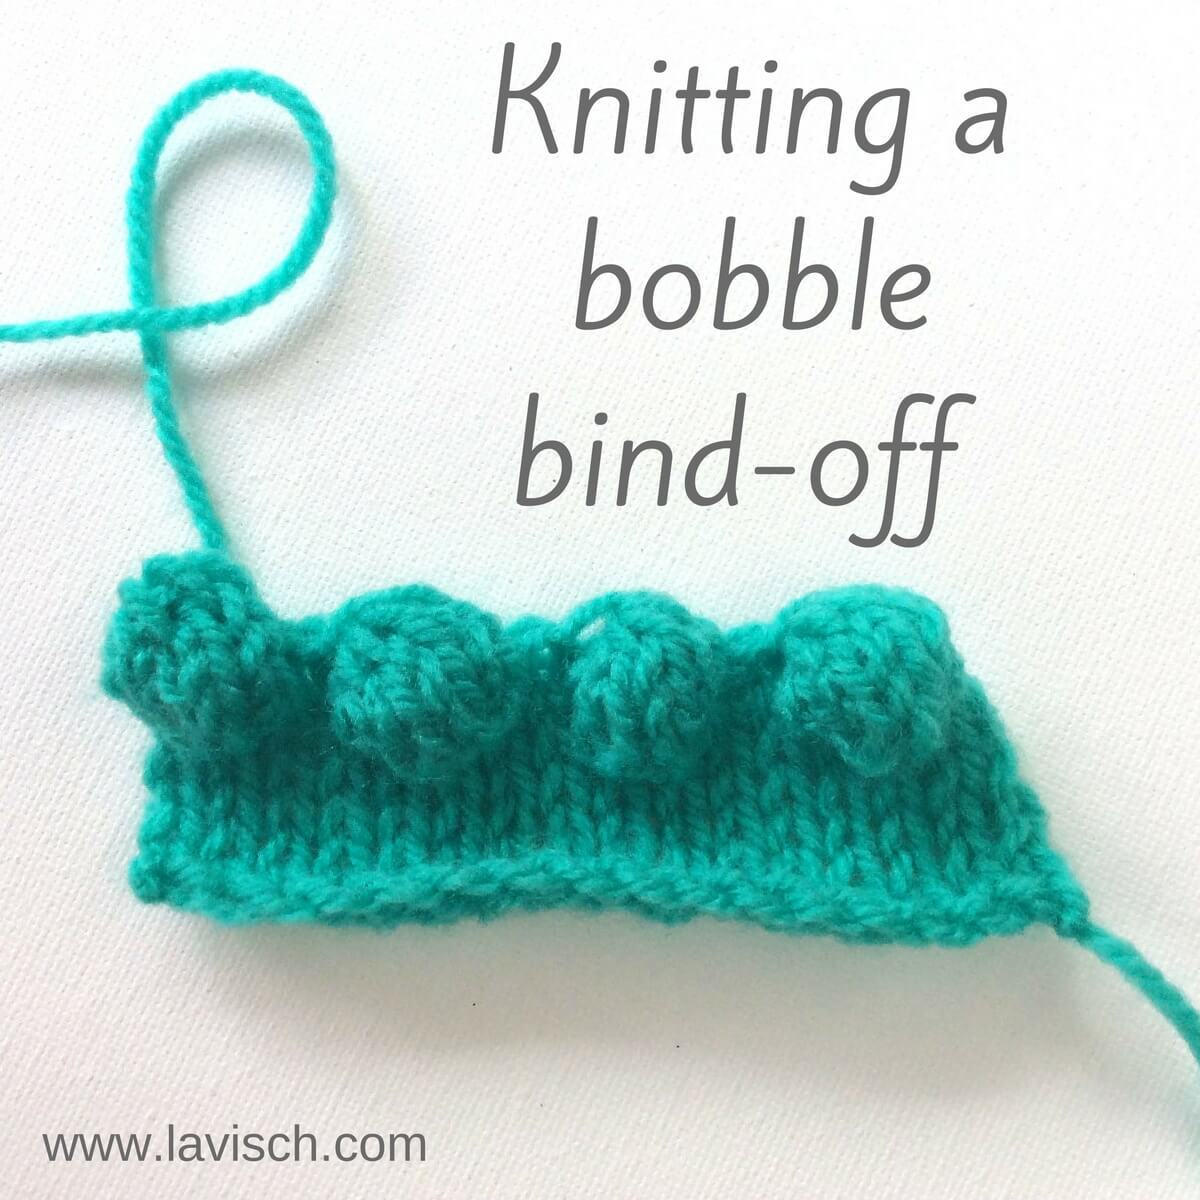 Tutorial: Knitting A Bobble Bind-off